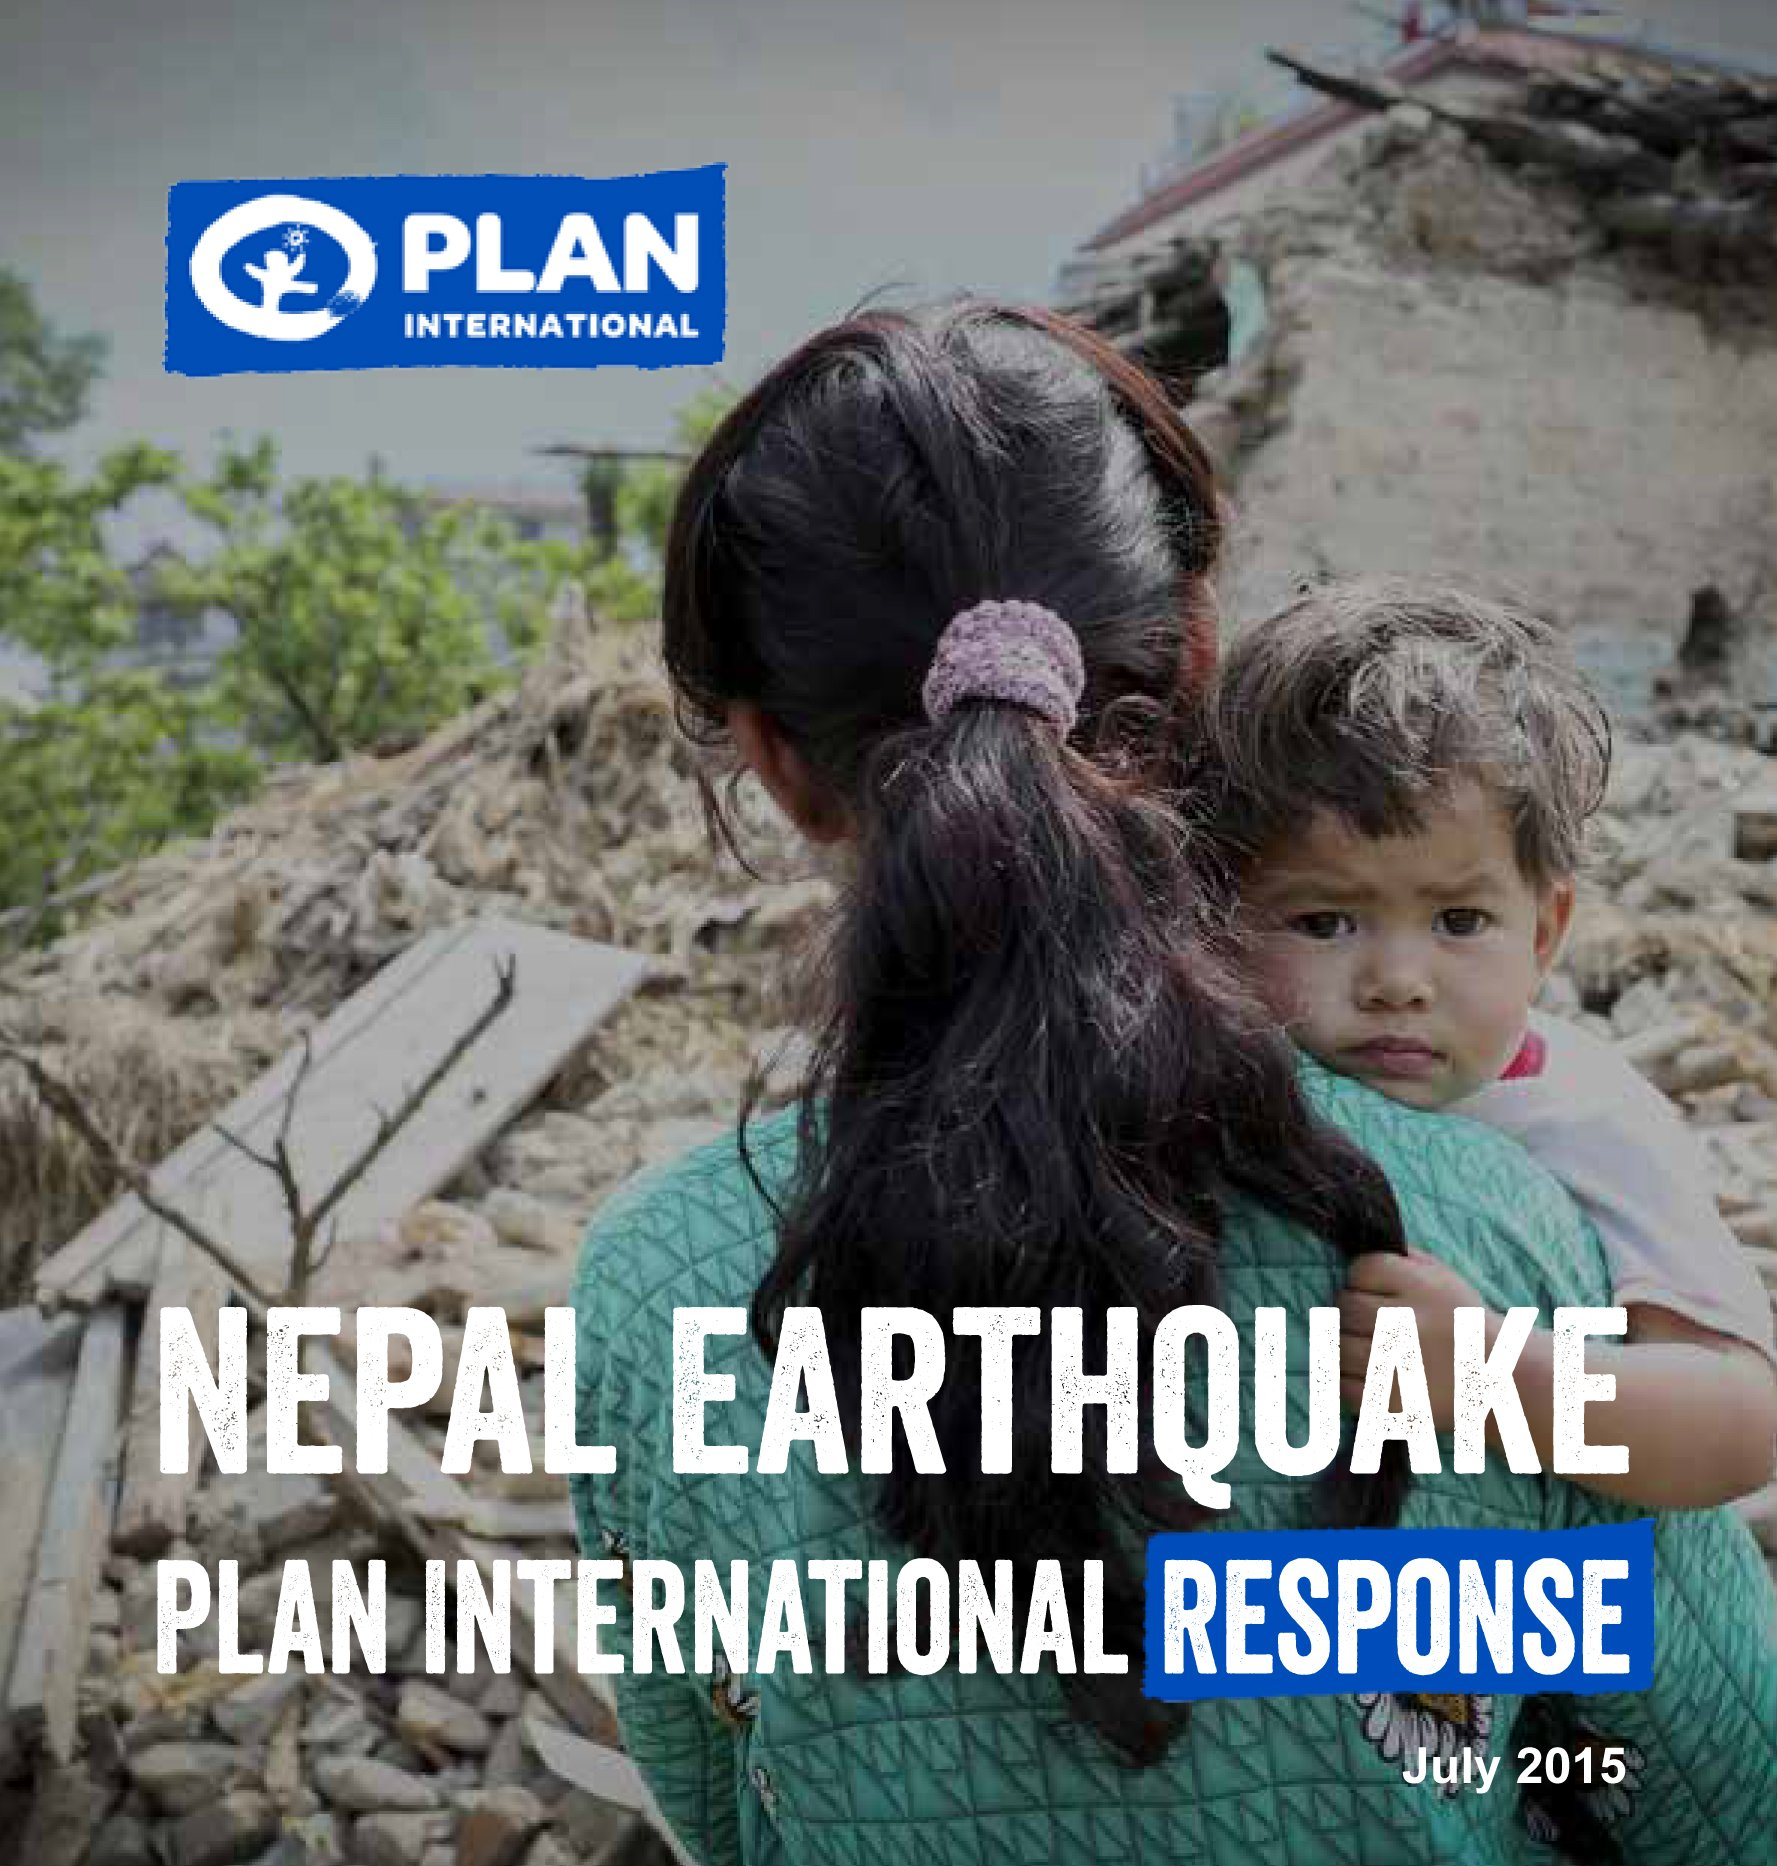 Nepal Earthquake: Plan International Response